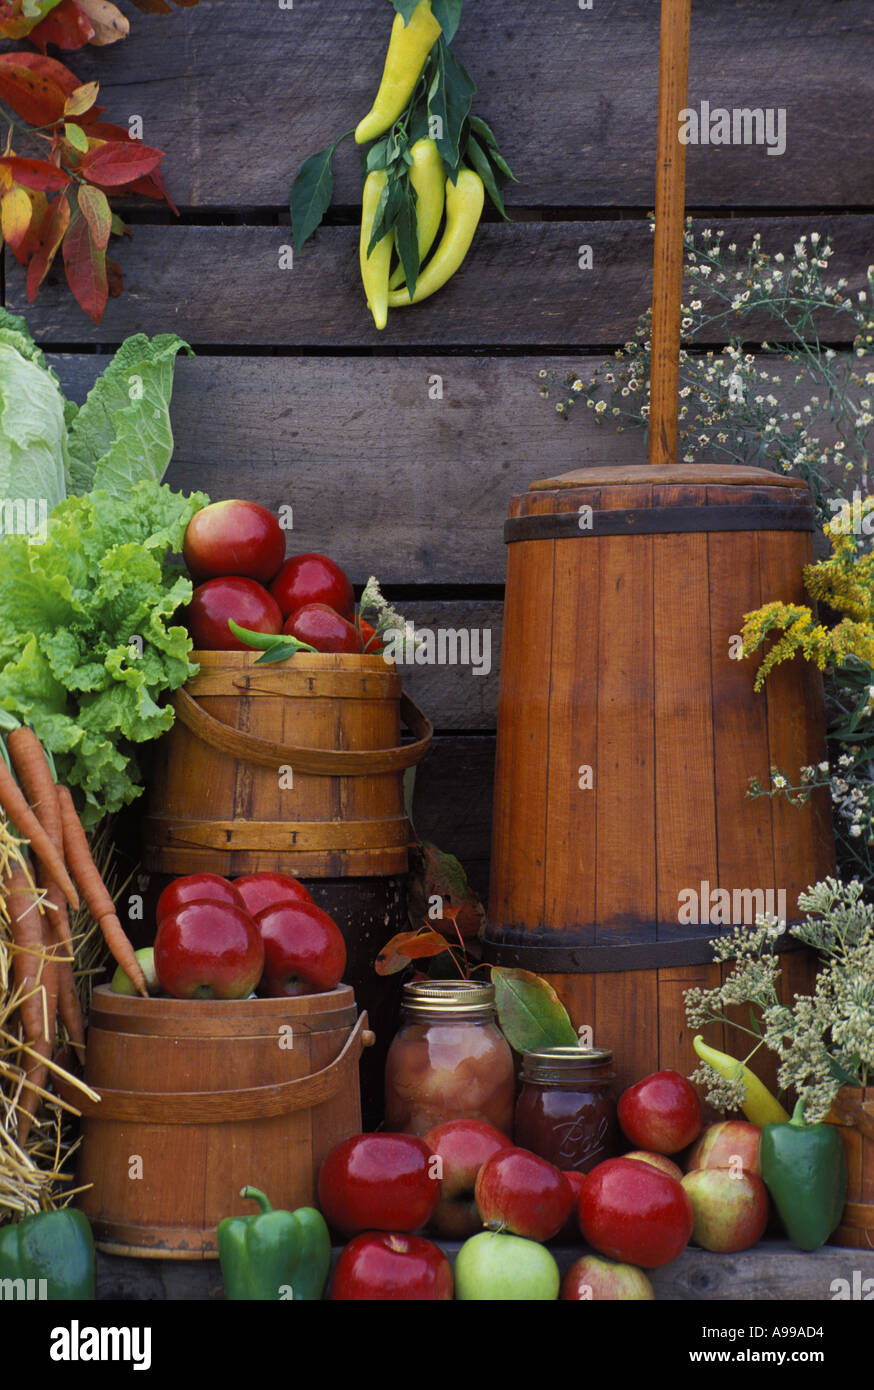 Harvested produce, antique churn and kitchen containers by old barn wall at an outdoor display of community farmer's market - Stock Image